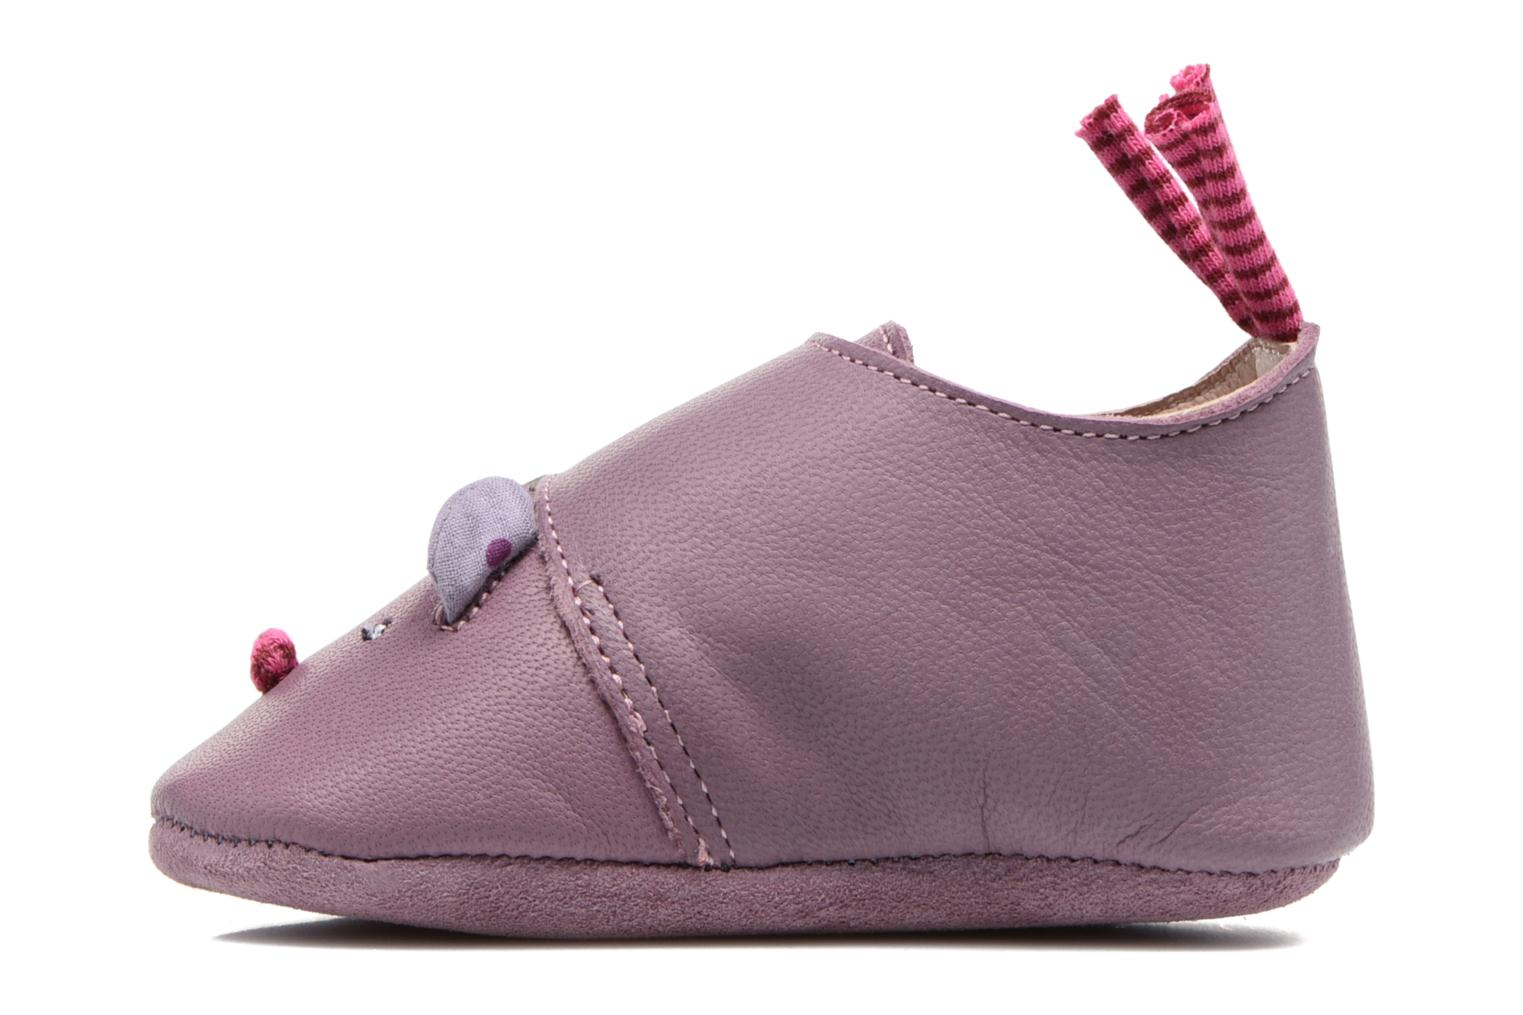 Chaussons Babybotte Souris - Moulin Roty Violet vue face